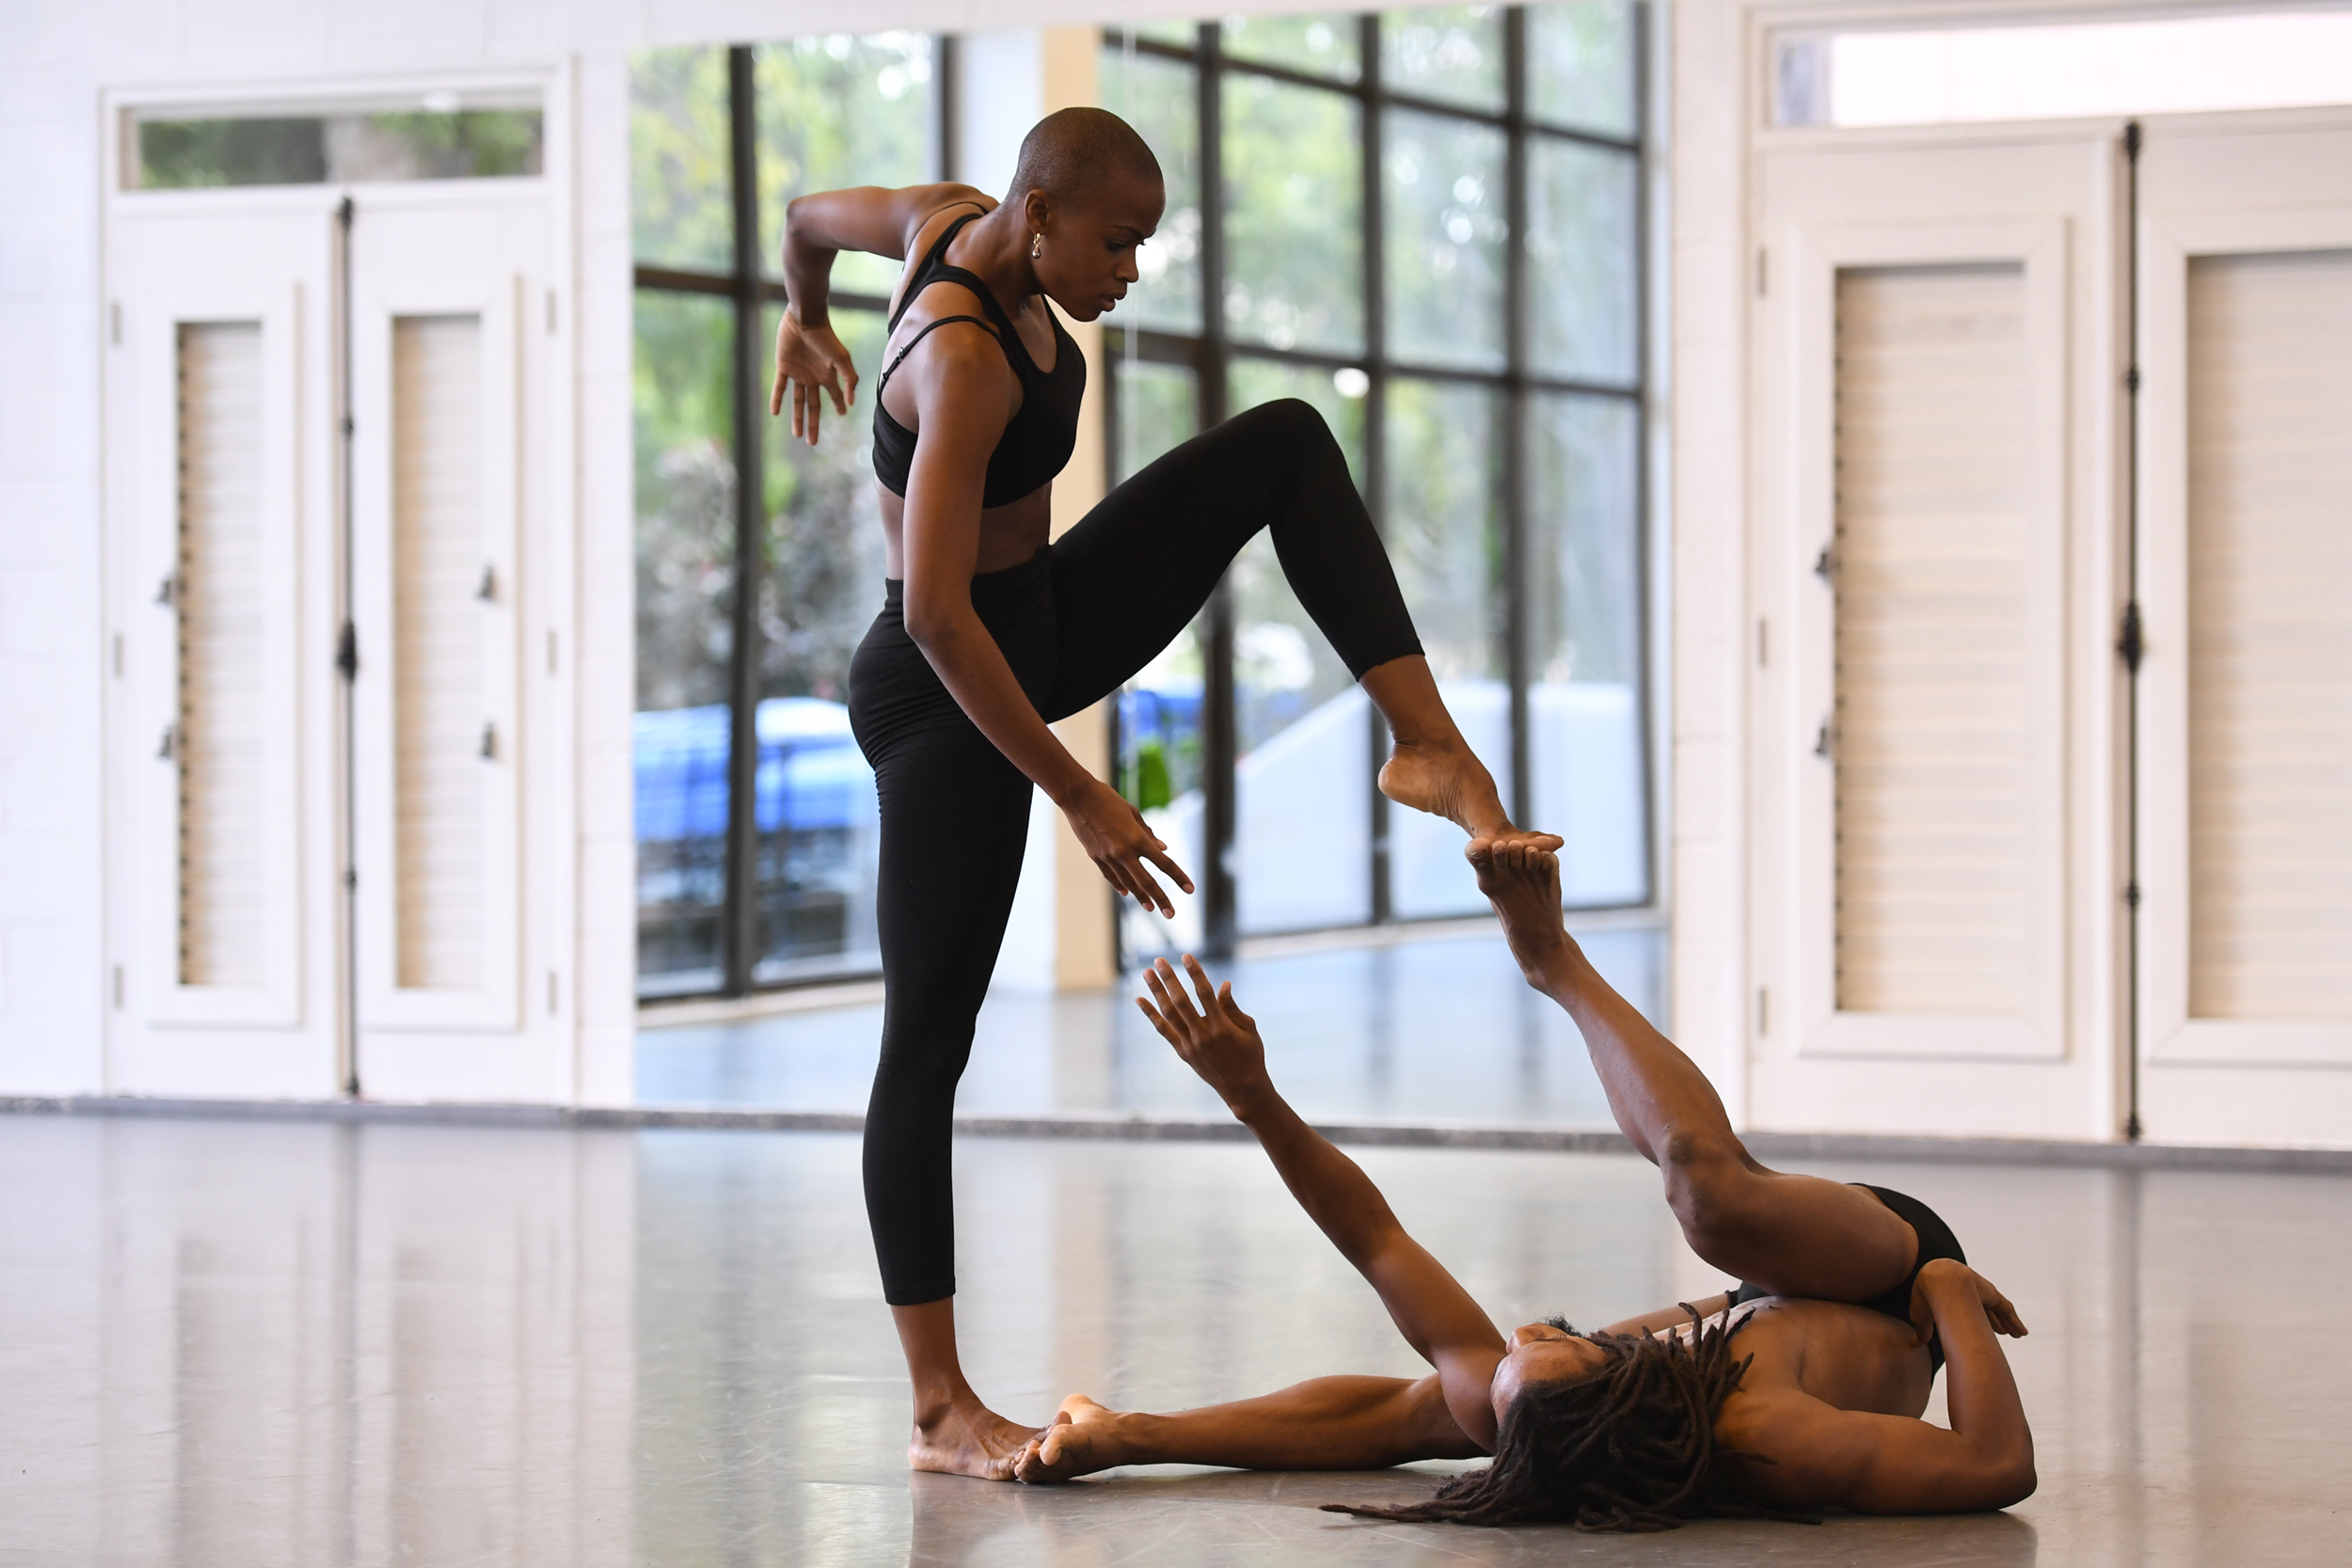 Dancers at the Lizt Alfonso Dance Cuba perform for Misty Copeland.